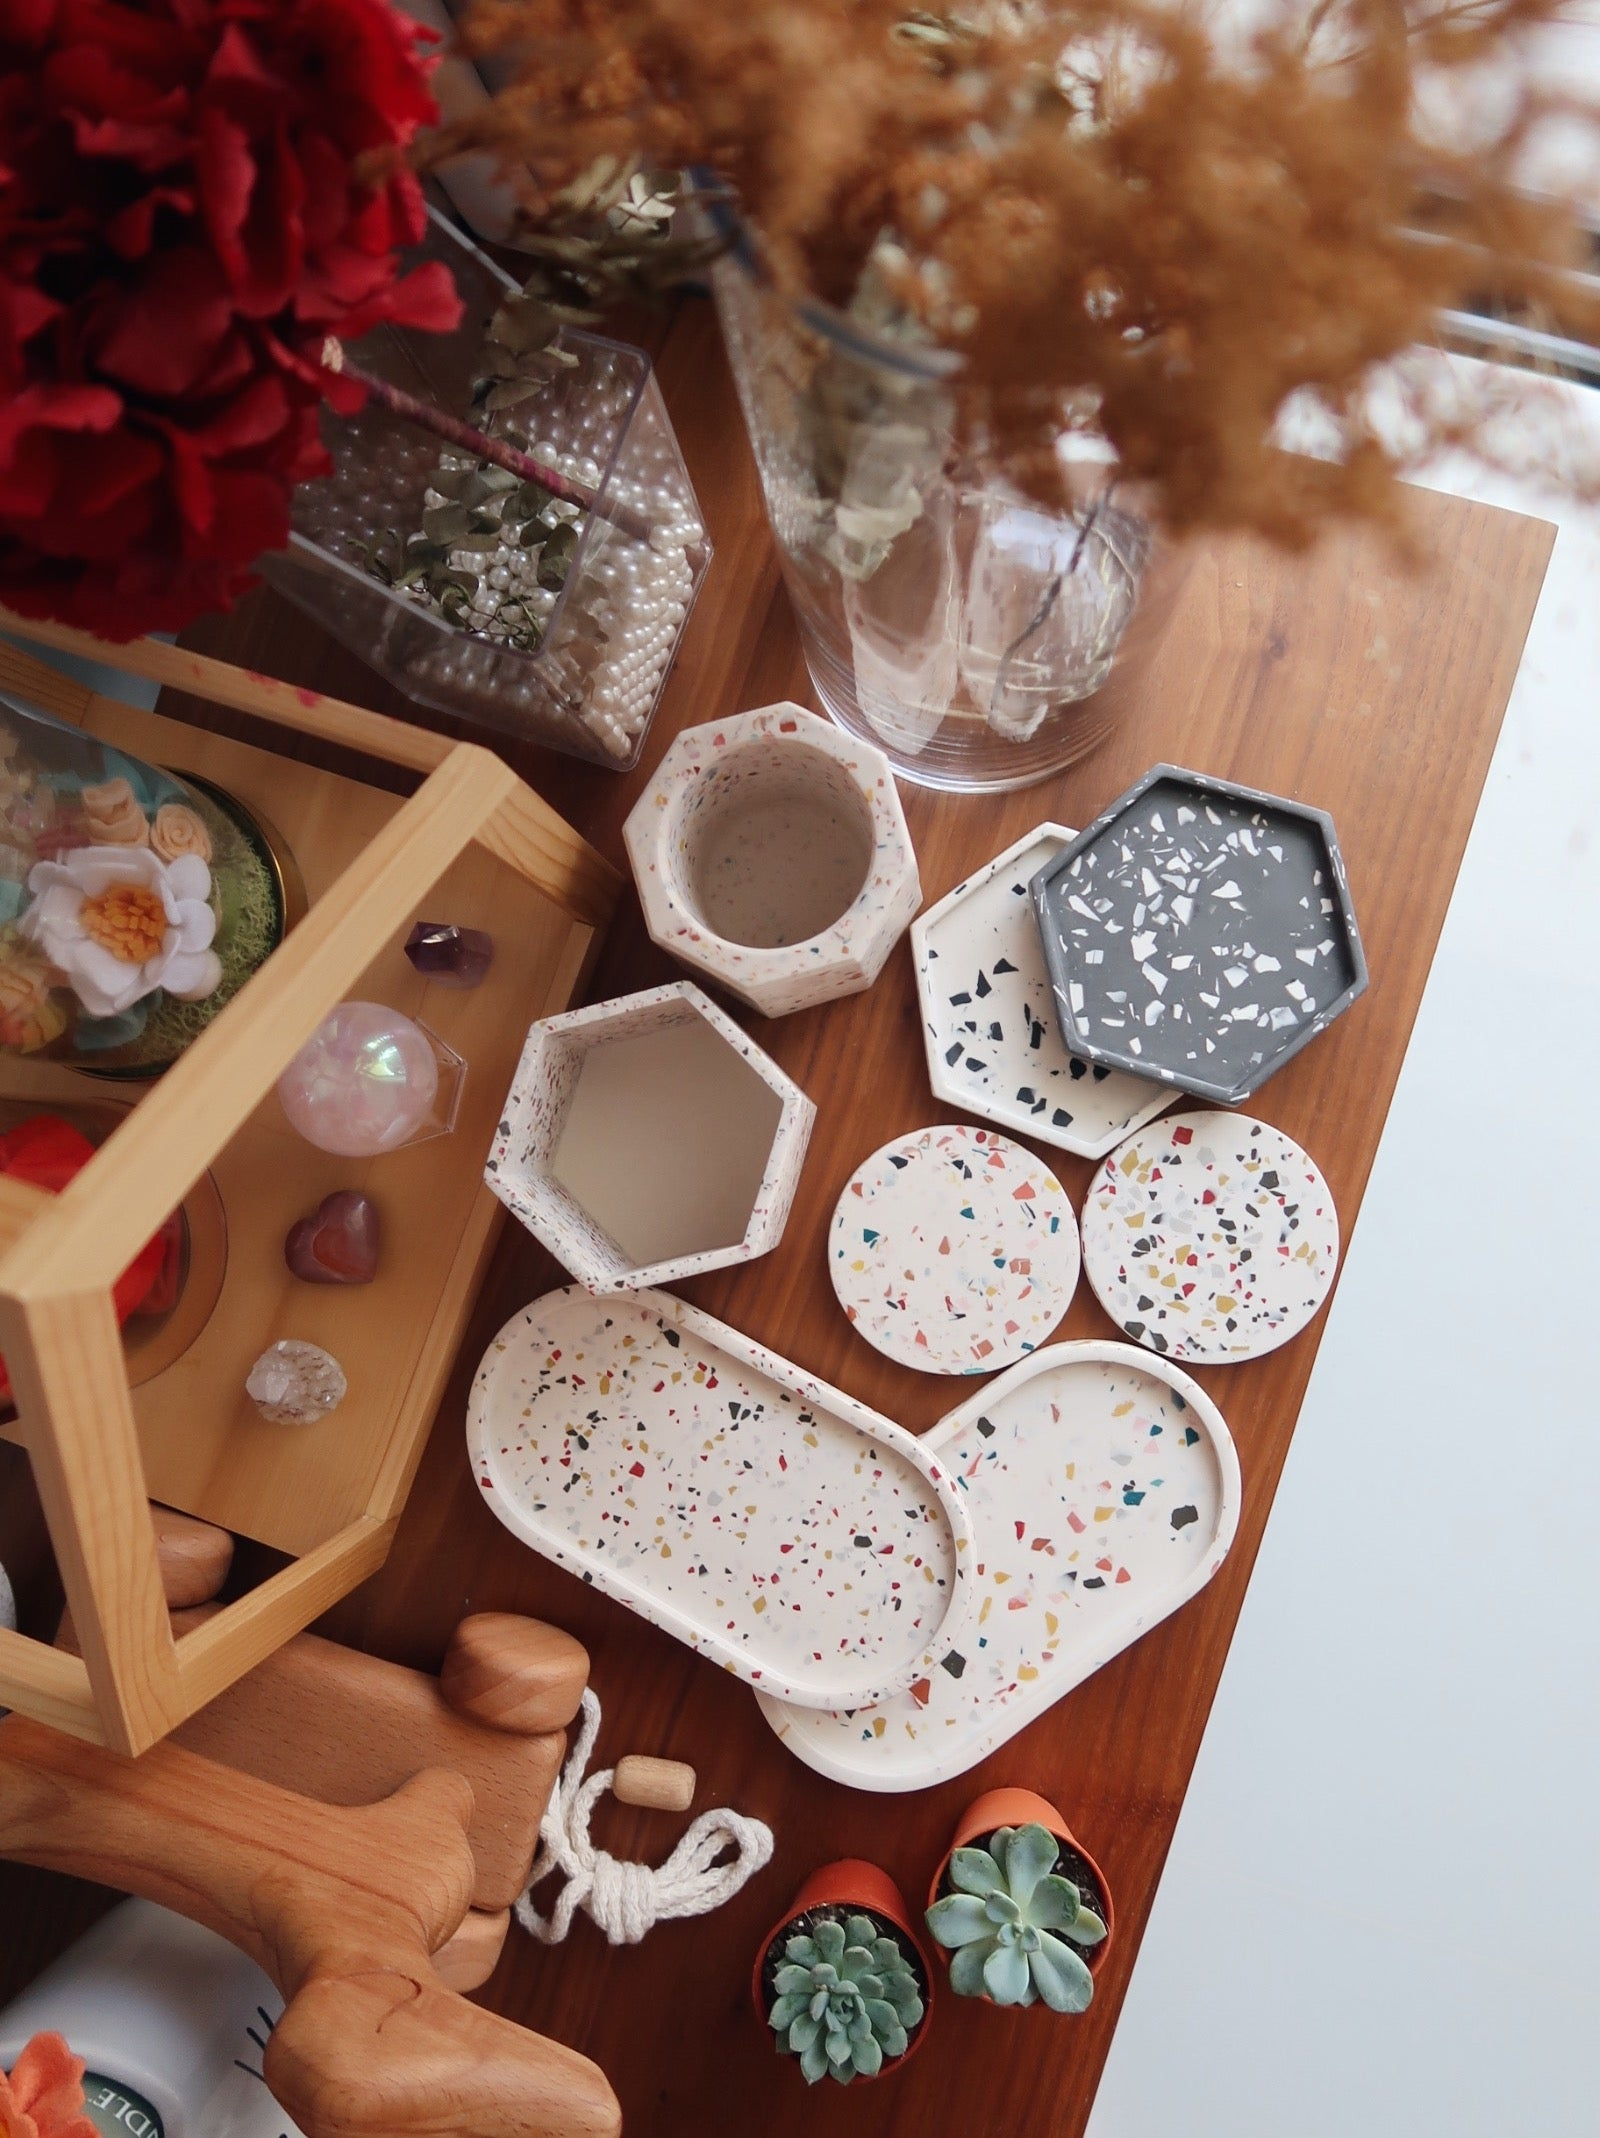 Shop Christmas Gifts Singapore. Christmas Gift Ideas 2020. EverydayCo Singapore home gifts. Long Jesmonite trays for home décor. Home decoration gifts for the home.